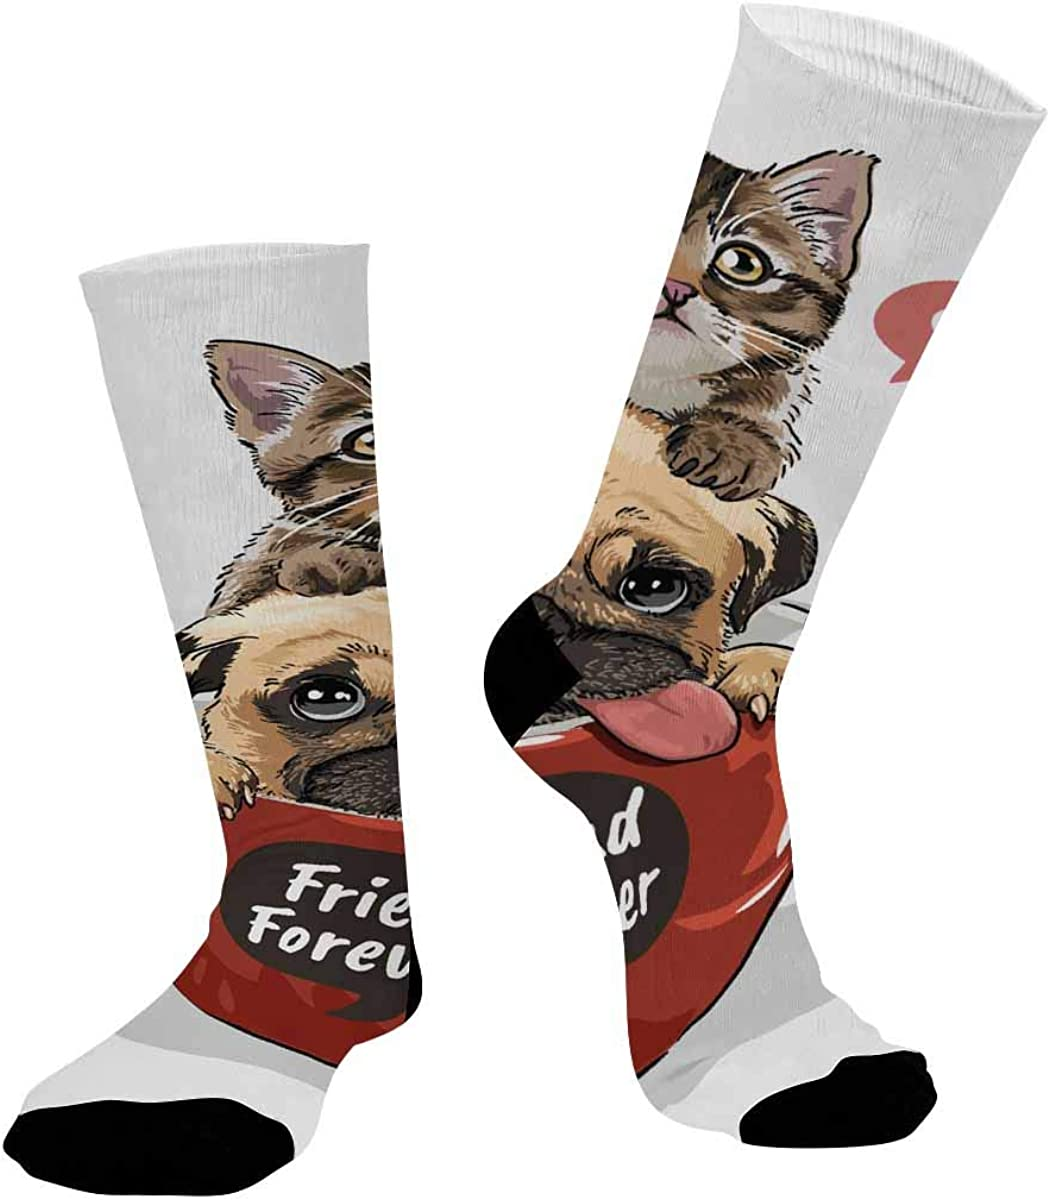 INTERESTPRINT Sublimated Crew Casual Athletic Socks Pug Dog and Little Kitten